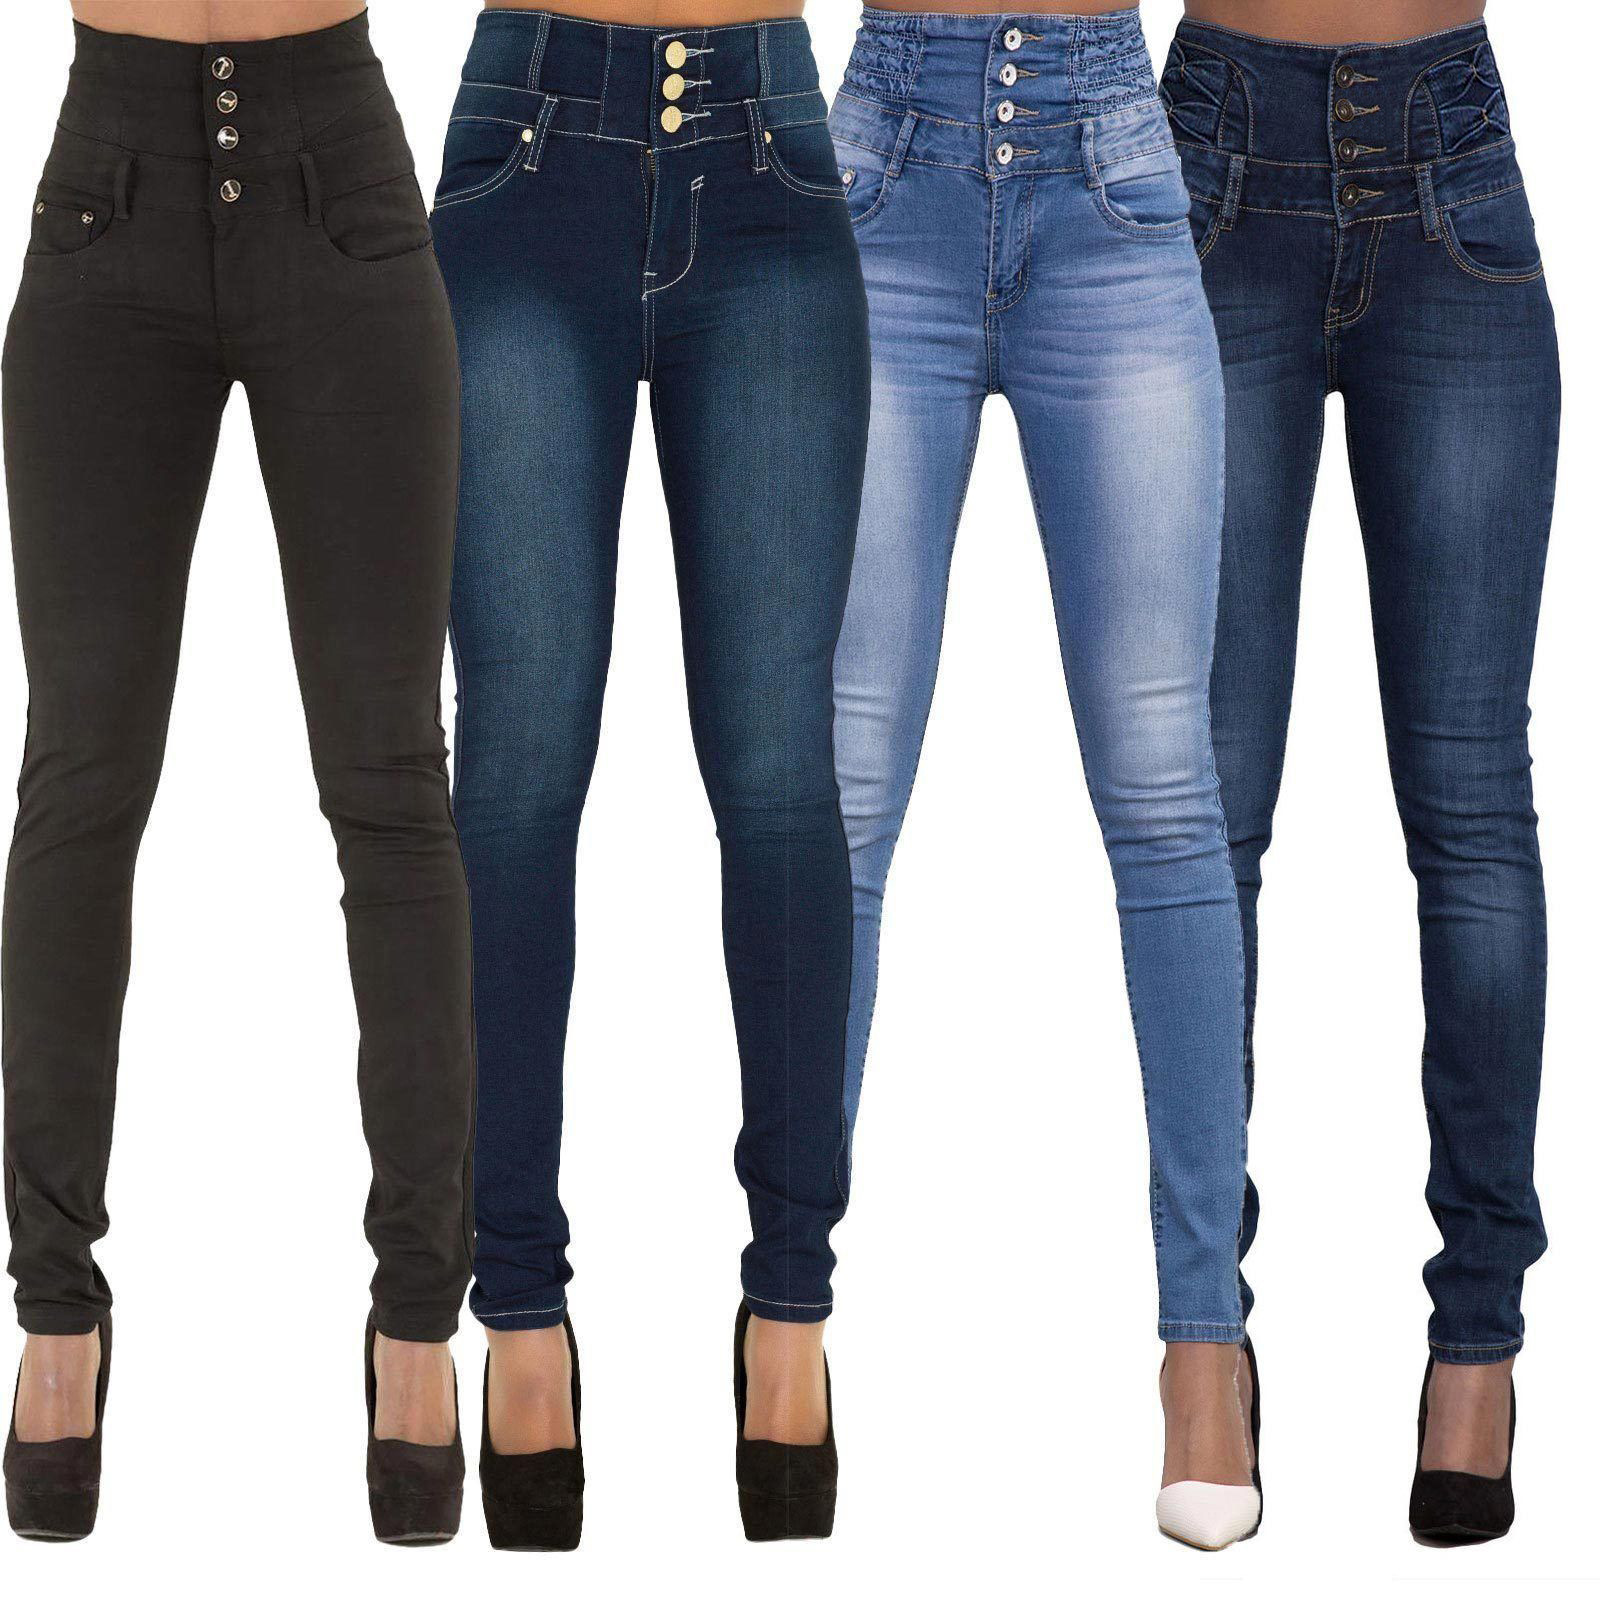 Hot Selling Autumn And Winter Women's Sexy High-waisted Slim Fit Stretch Plus-sized Skinny Jeans